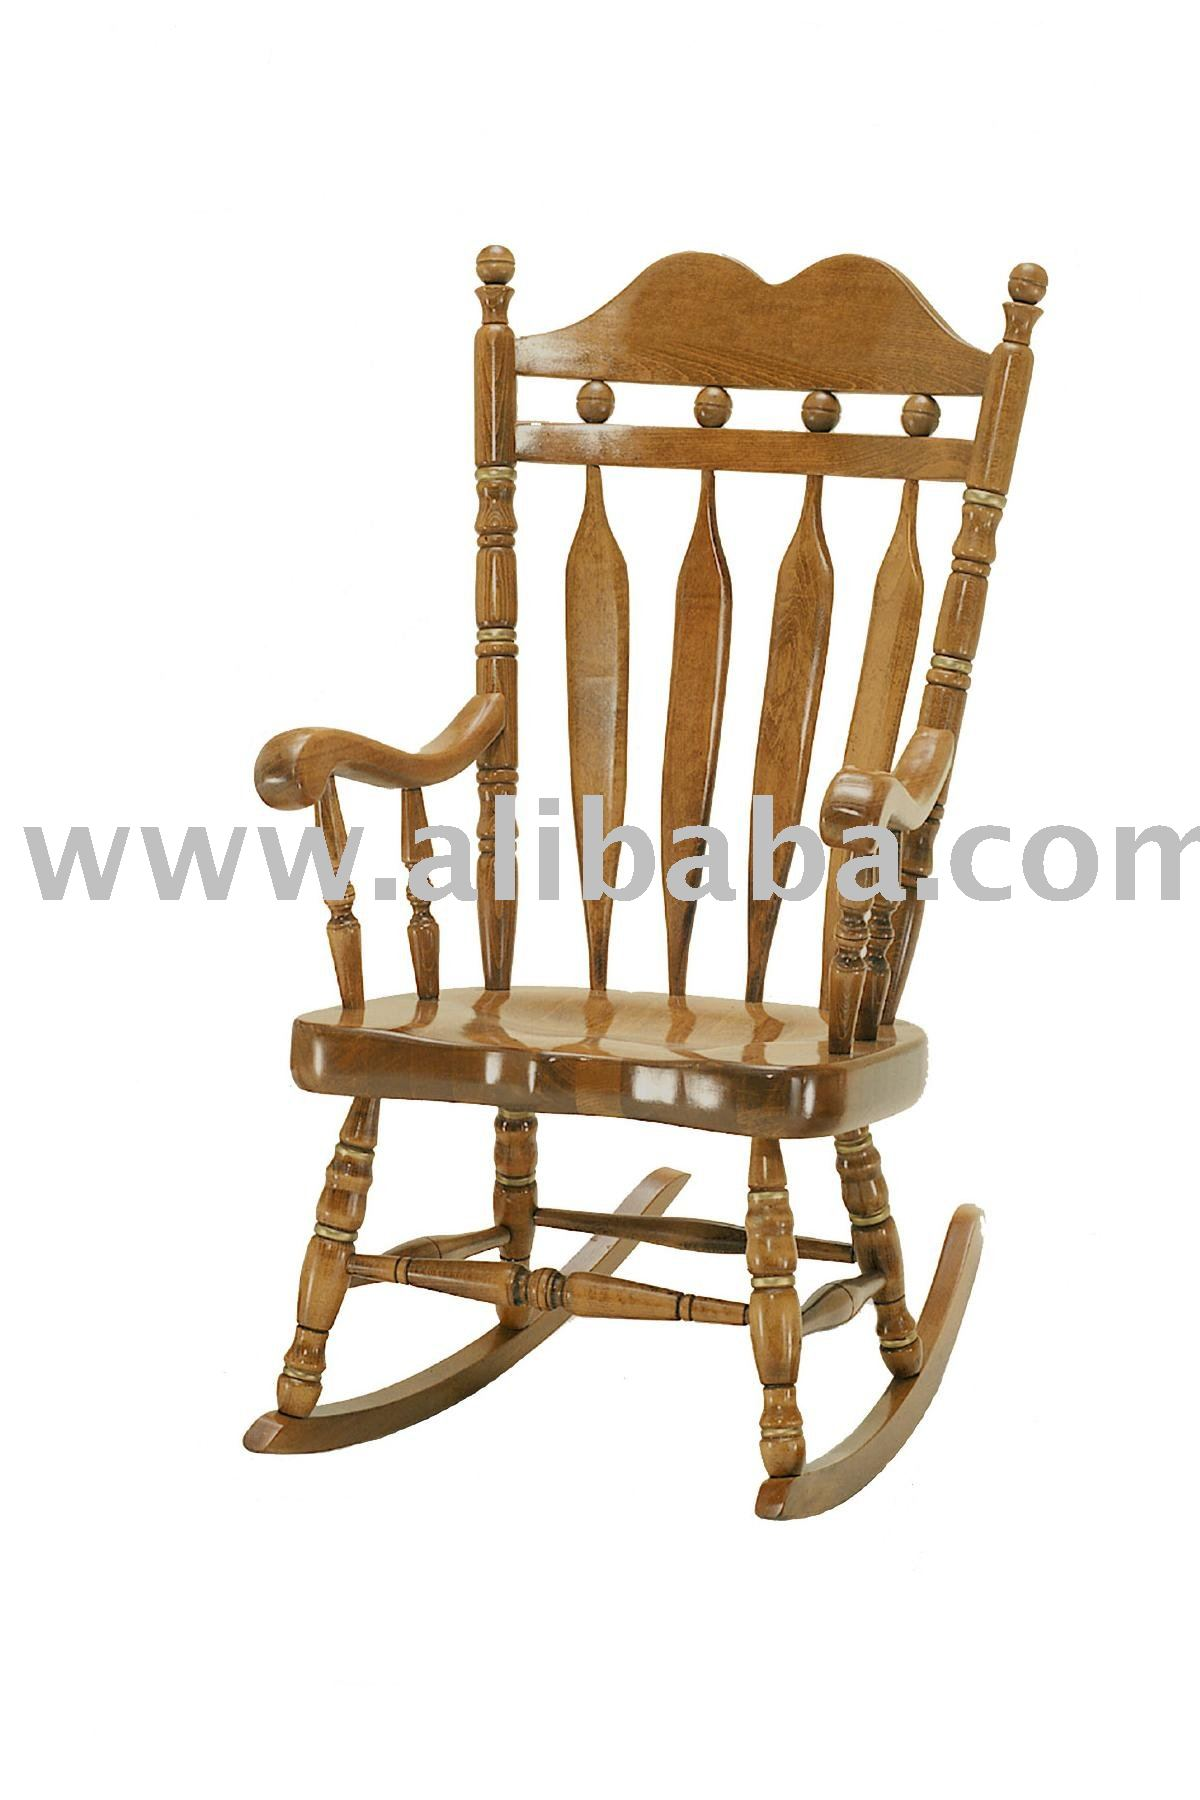 rocking chair magazine stand,Buying rocking chair magazine stand ...